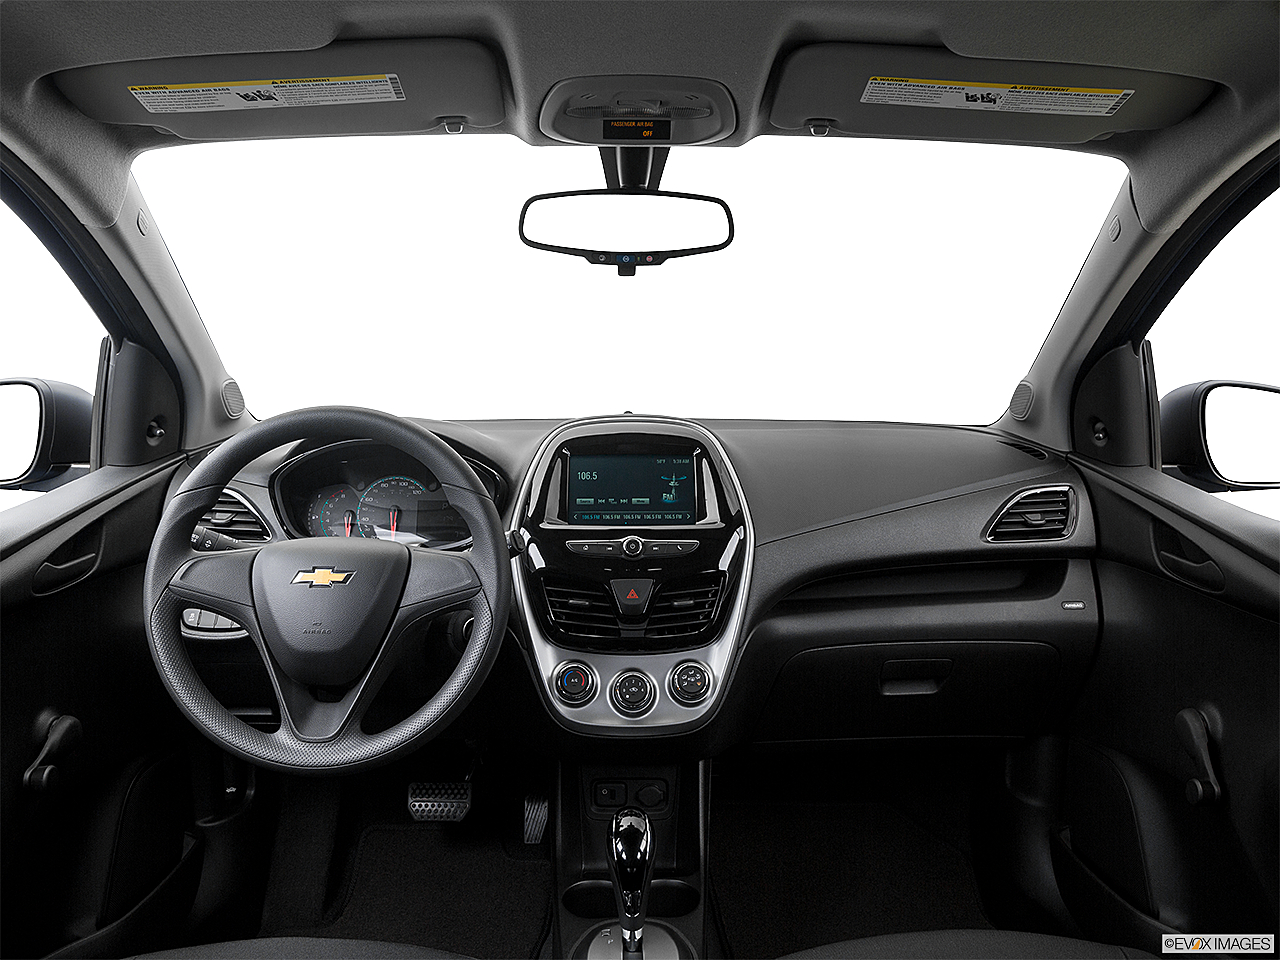 2016 Chevrolet Spark Ls Automatic Centered Wide Dash Shot